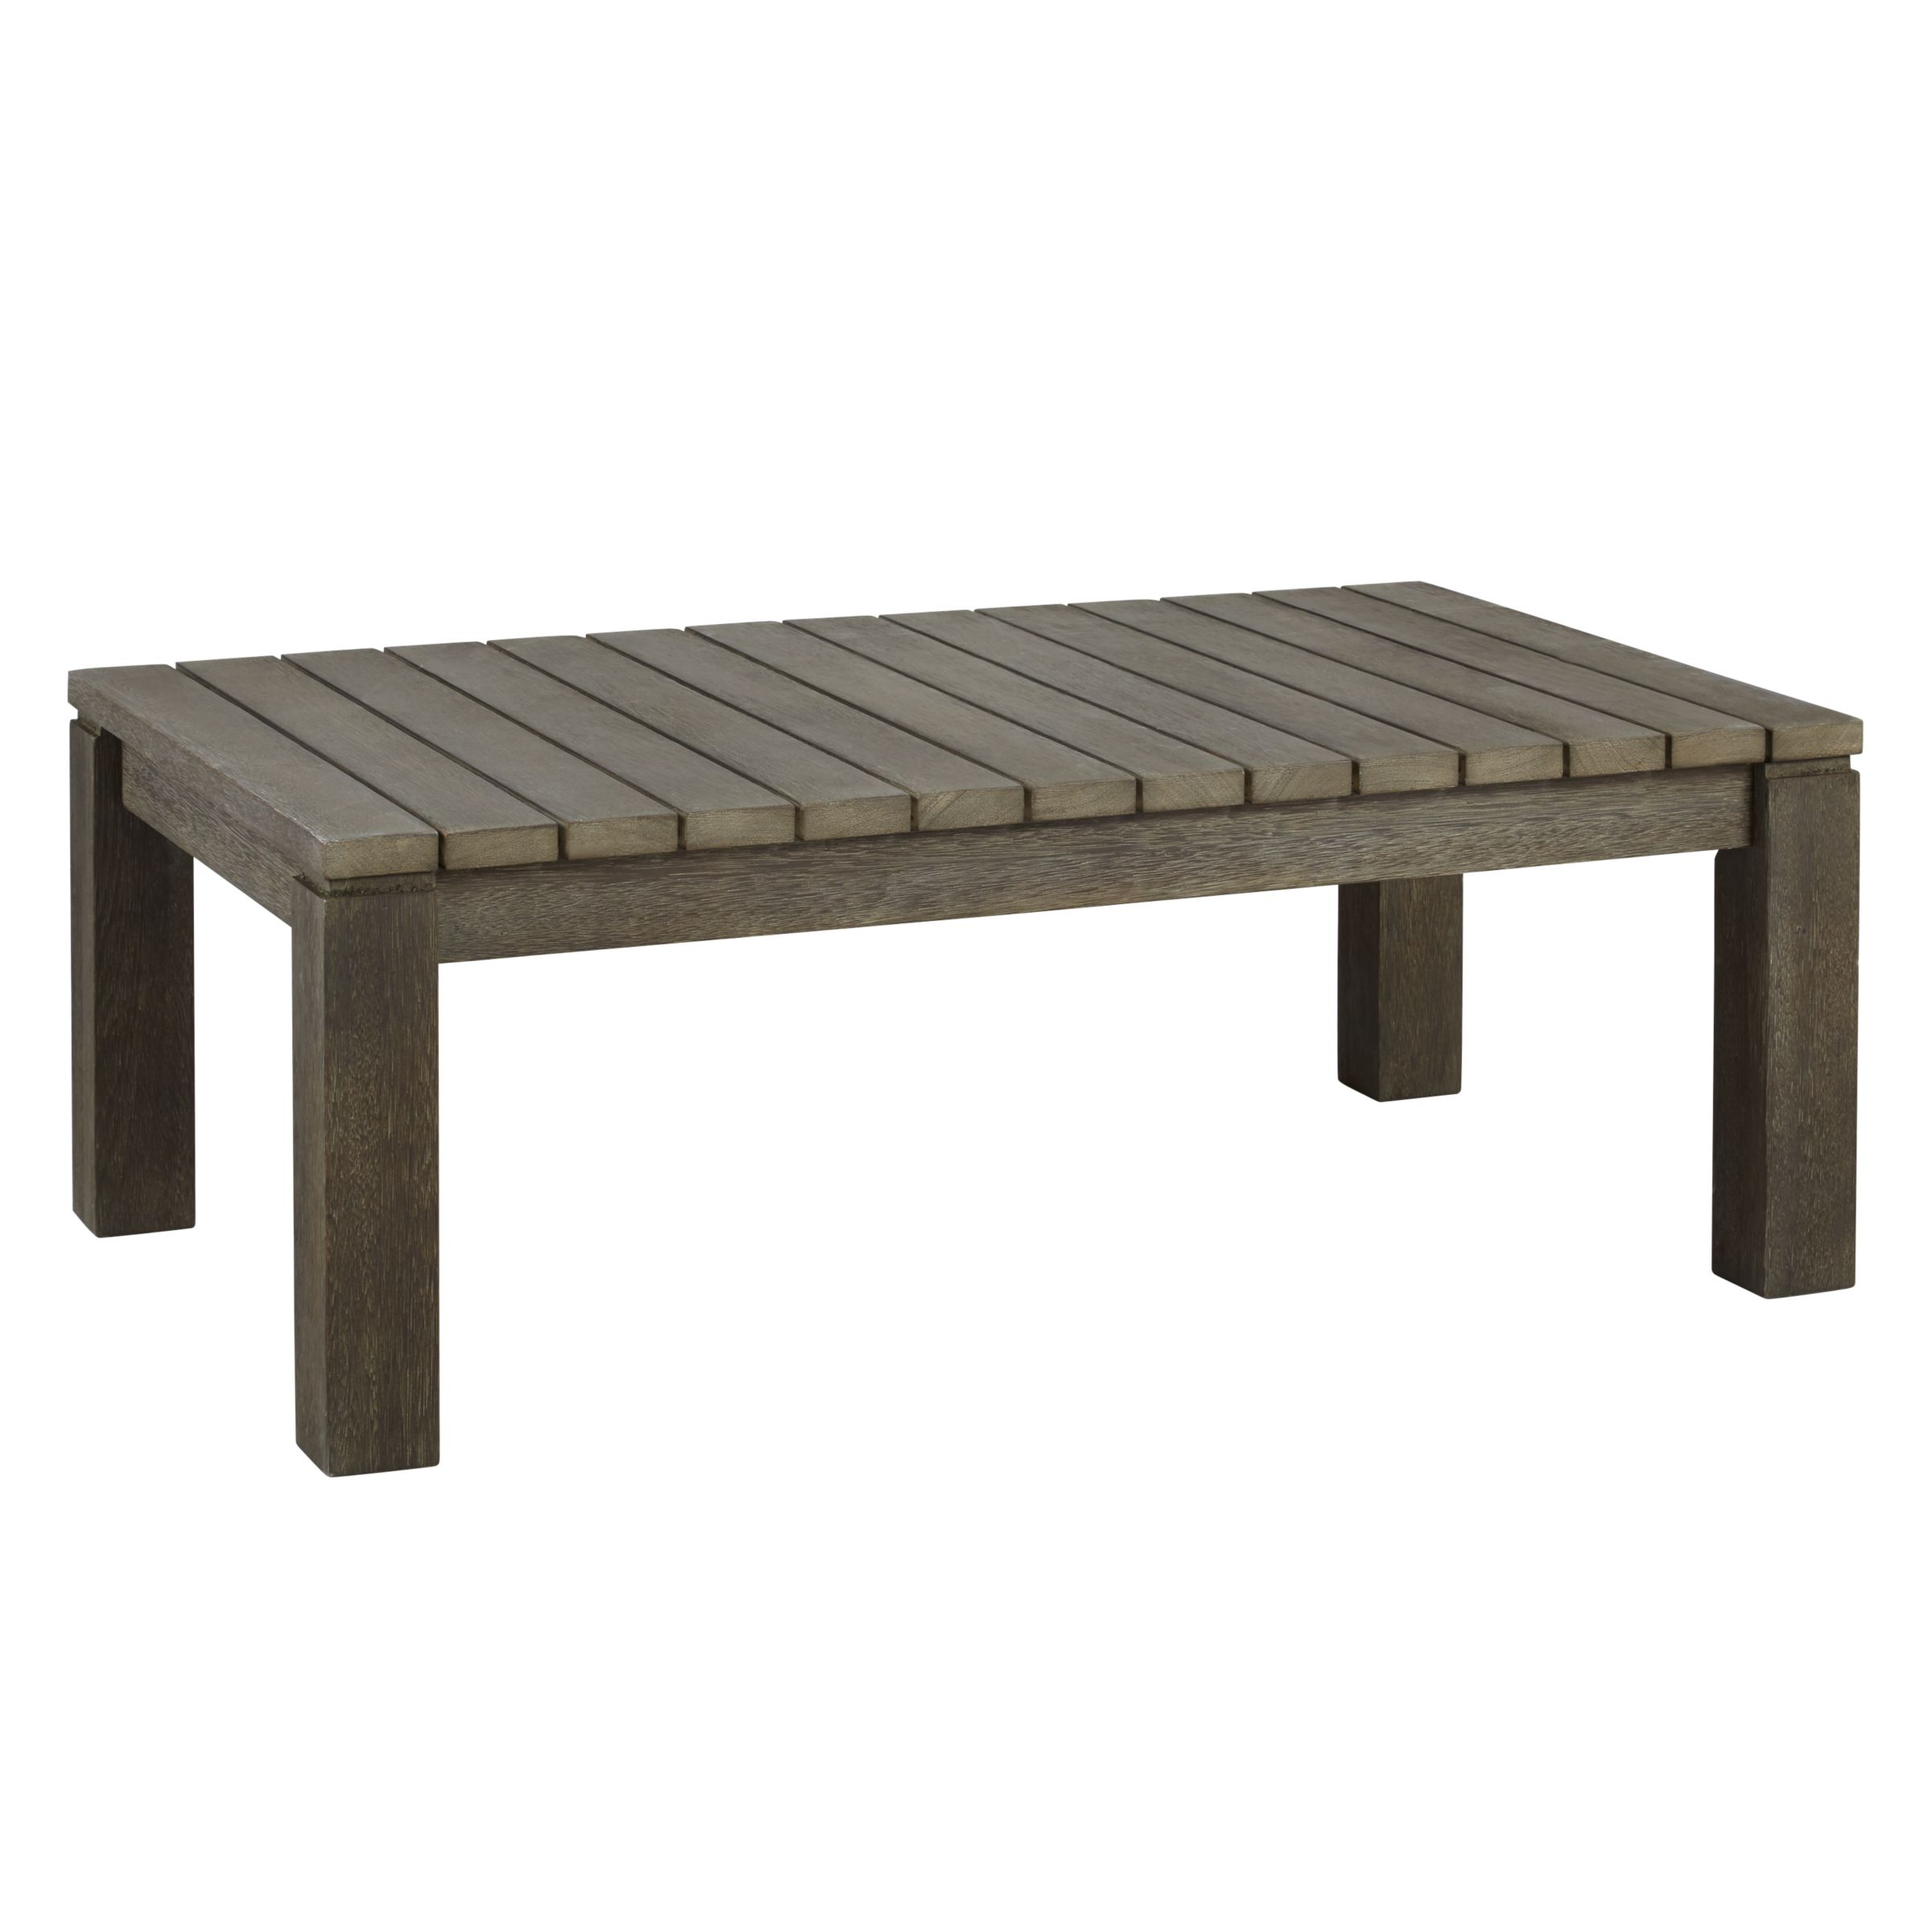 Outdoor Coffee Table Shop For Cheap Garden And Save Online